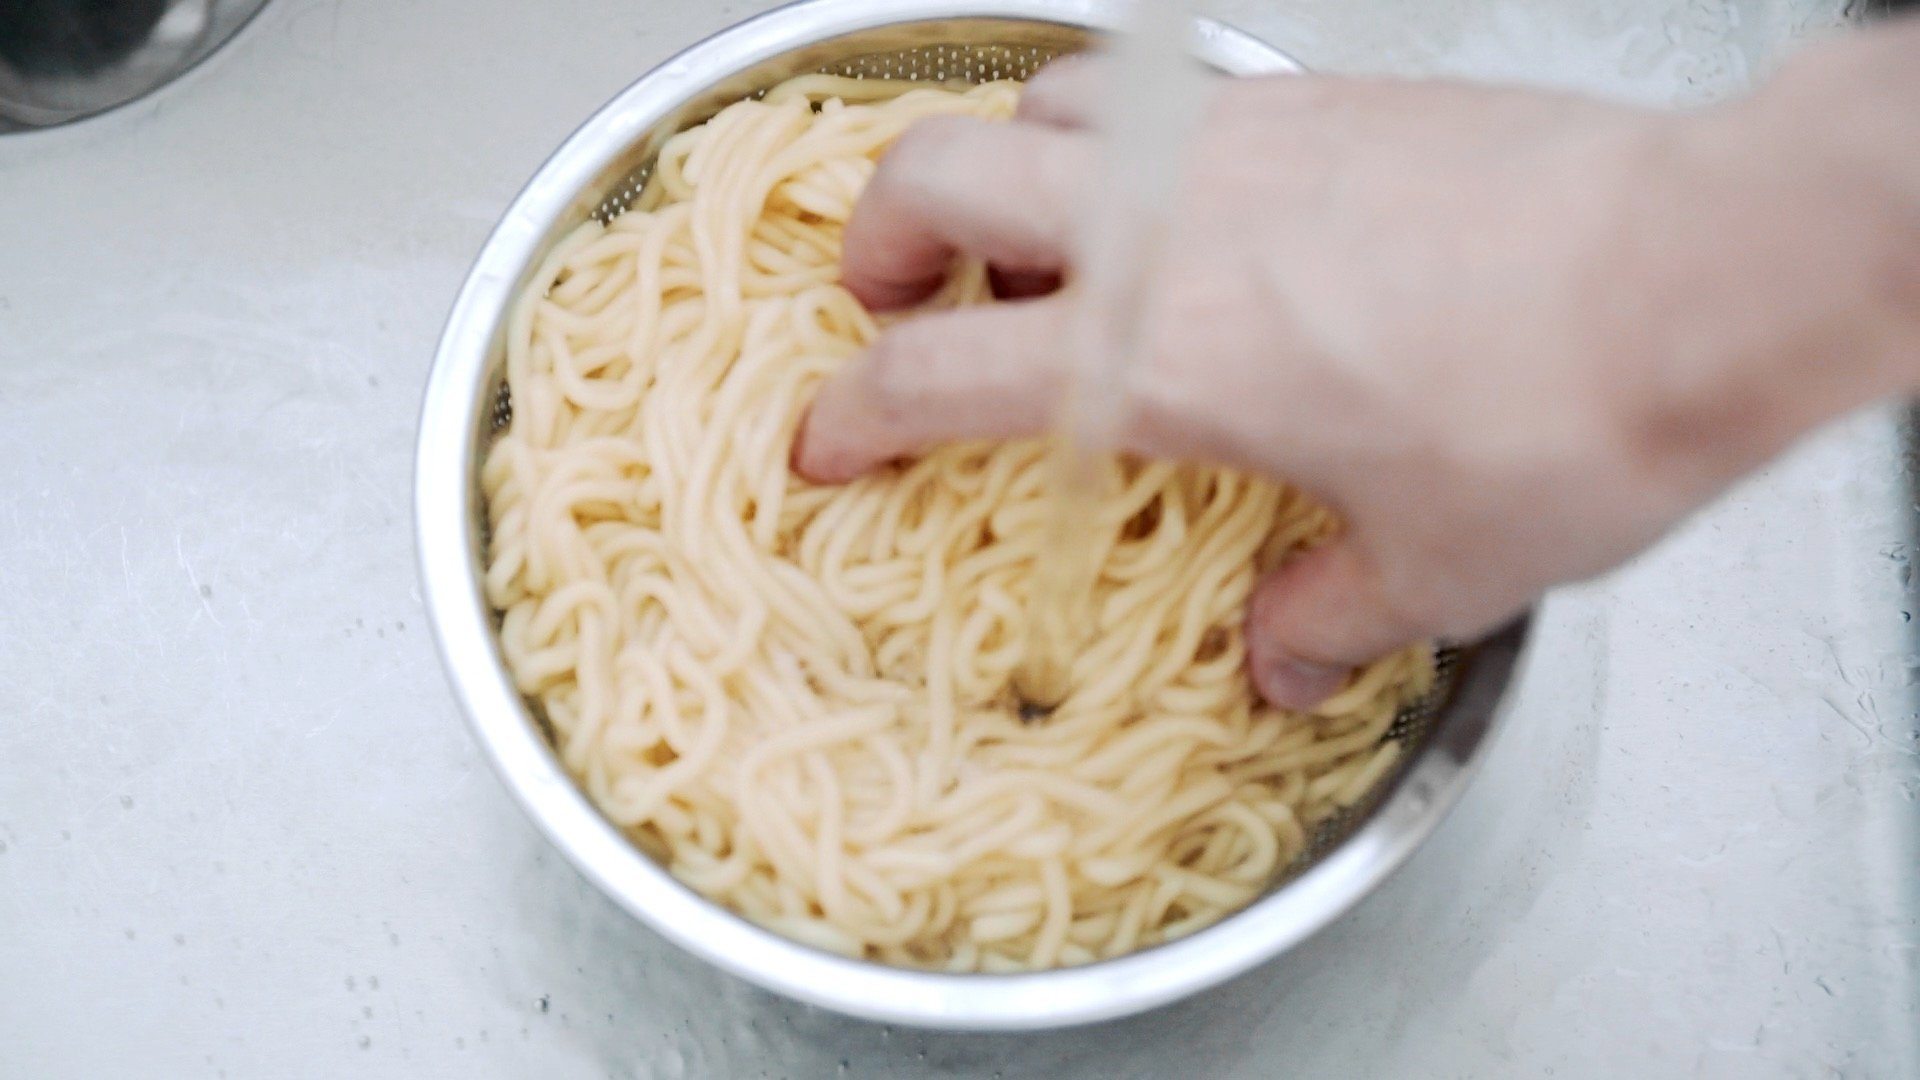 Rinsing Chow Mein noodles.